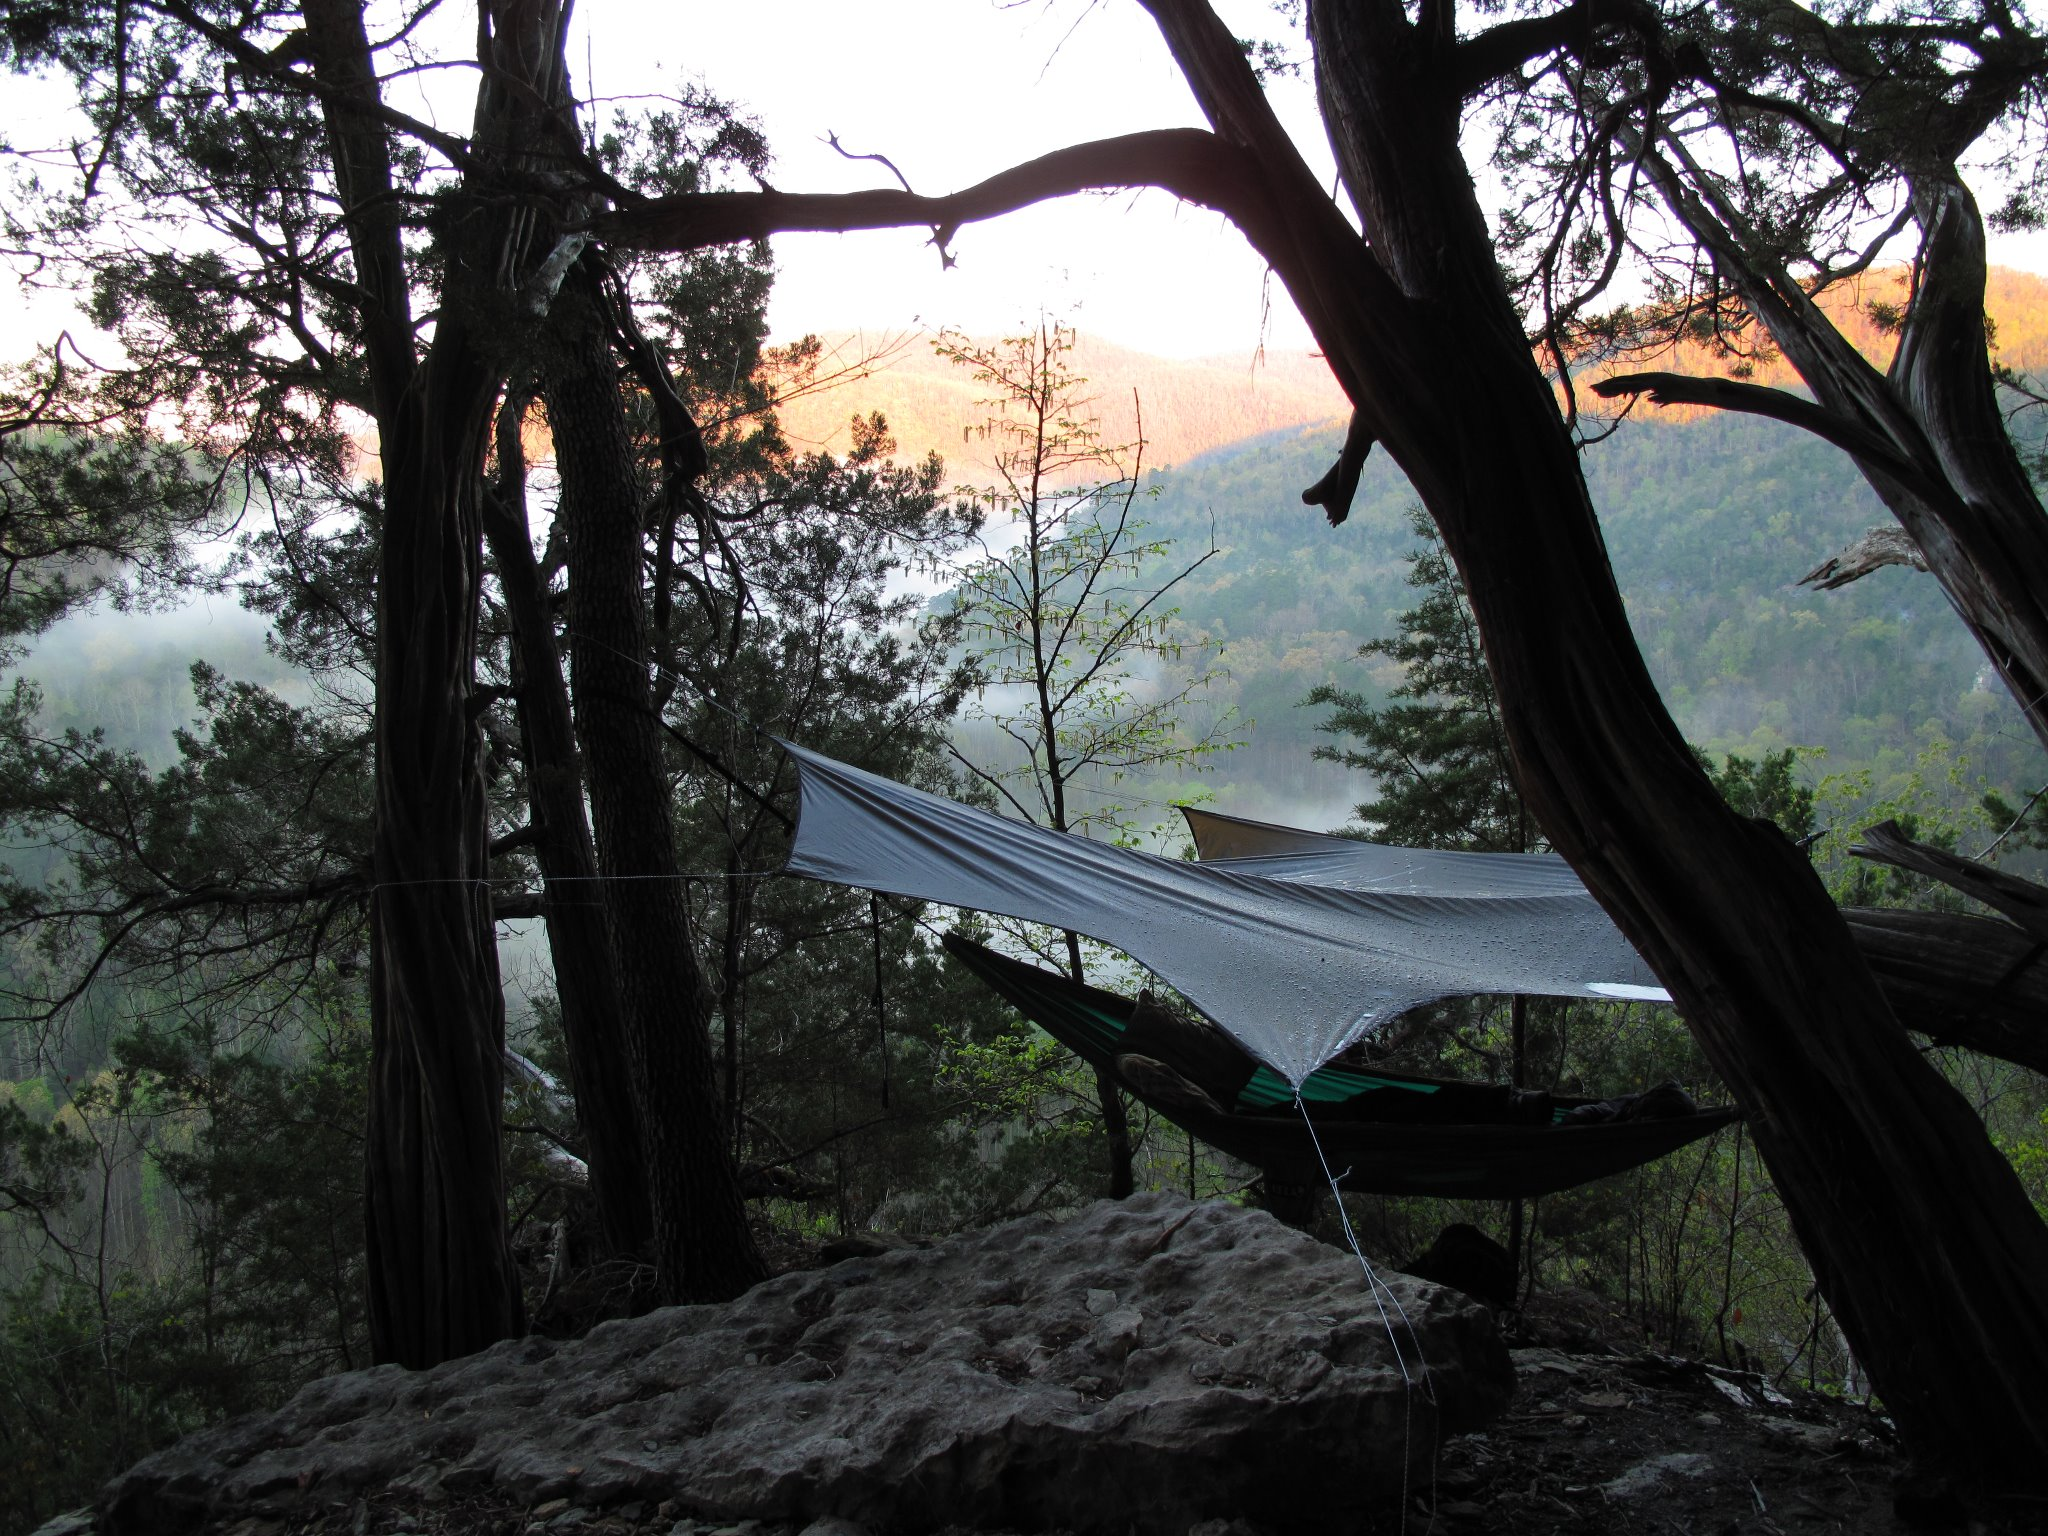 eno doublenest hammock w eno rain fly review brutal reviews   eno doublenest hammock   our world awaits      rh   ourworldawaits